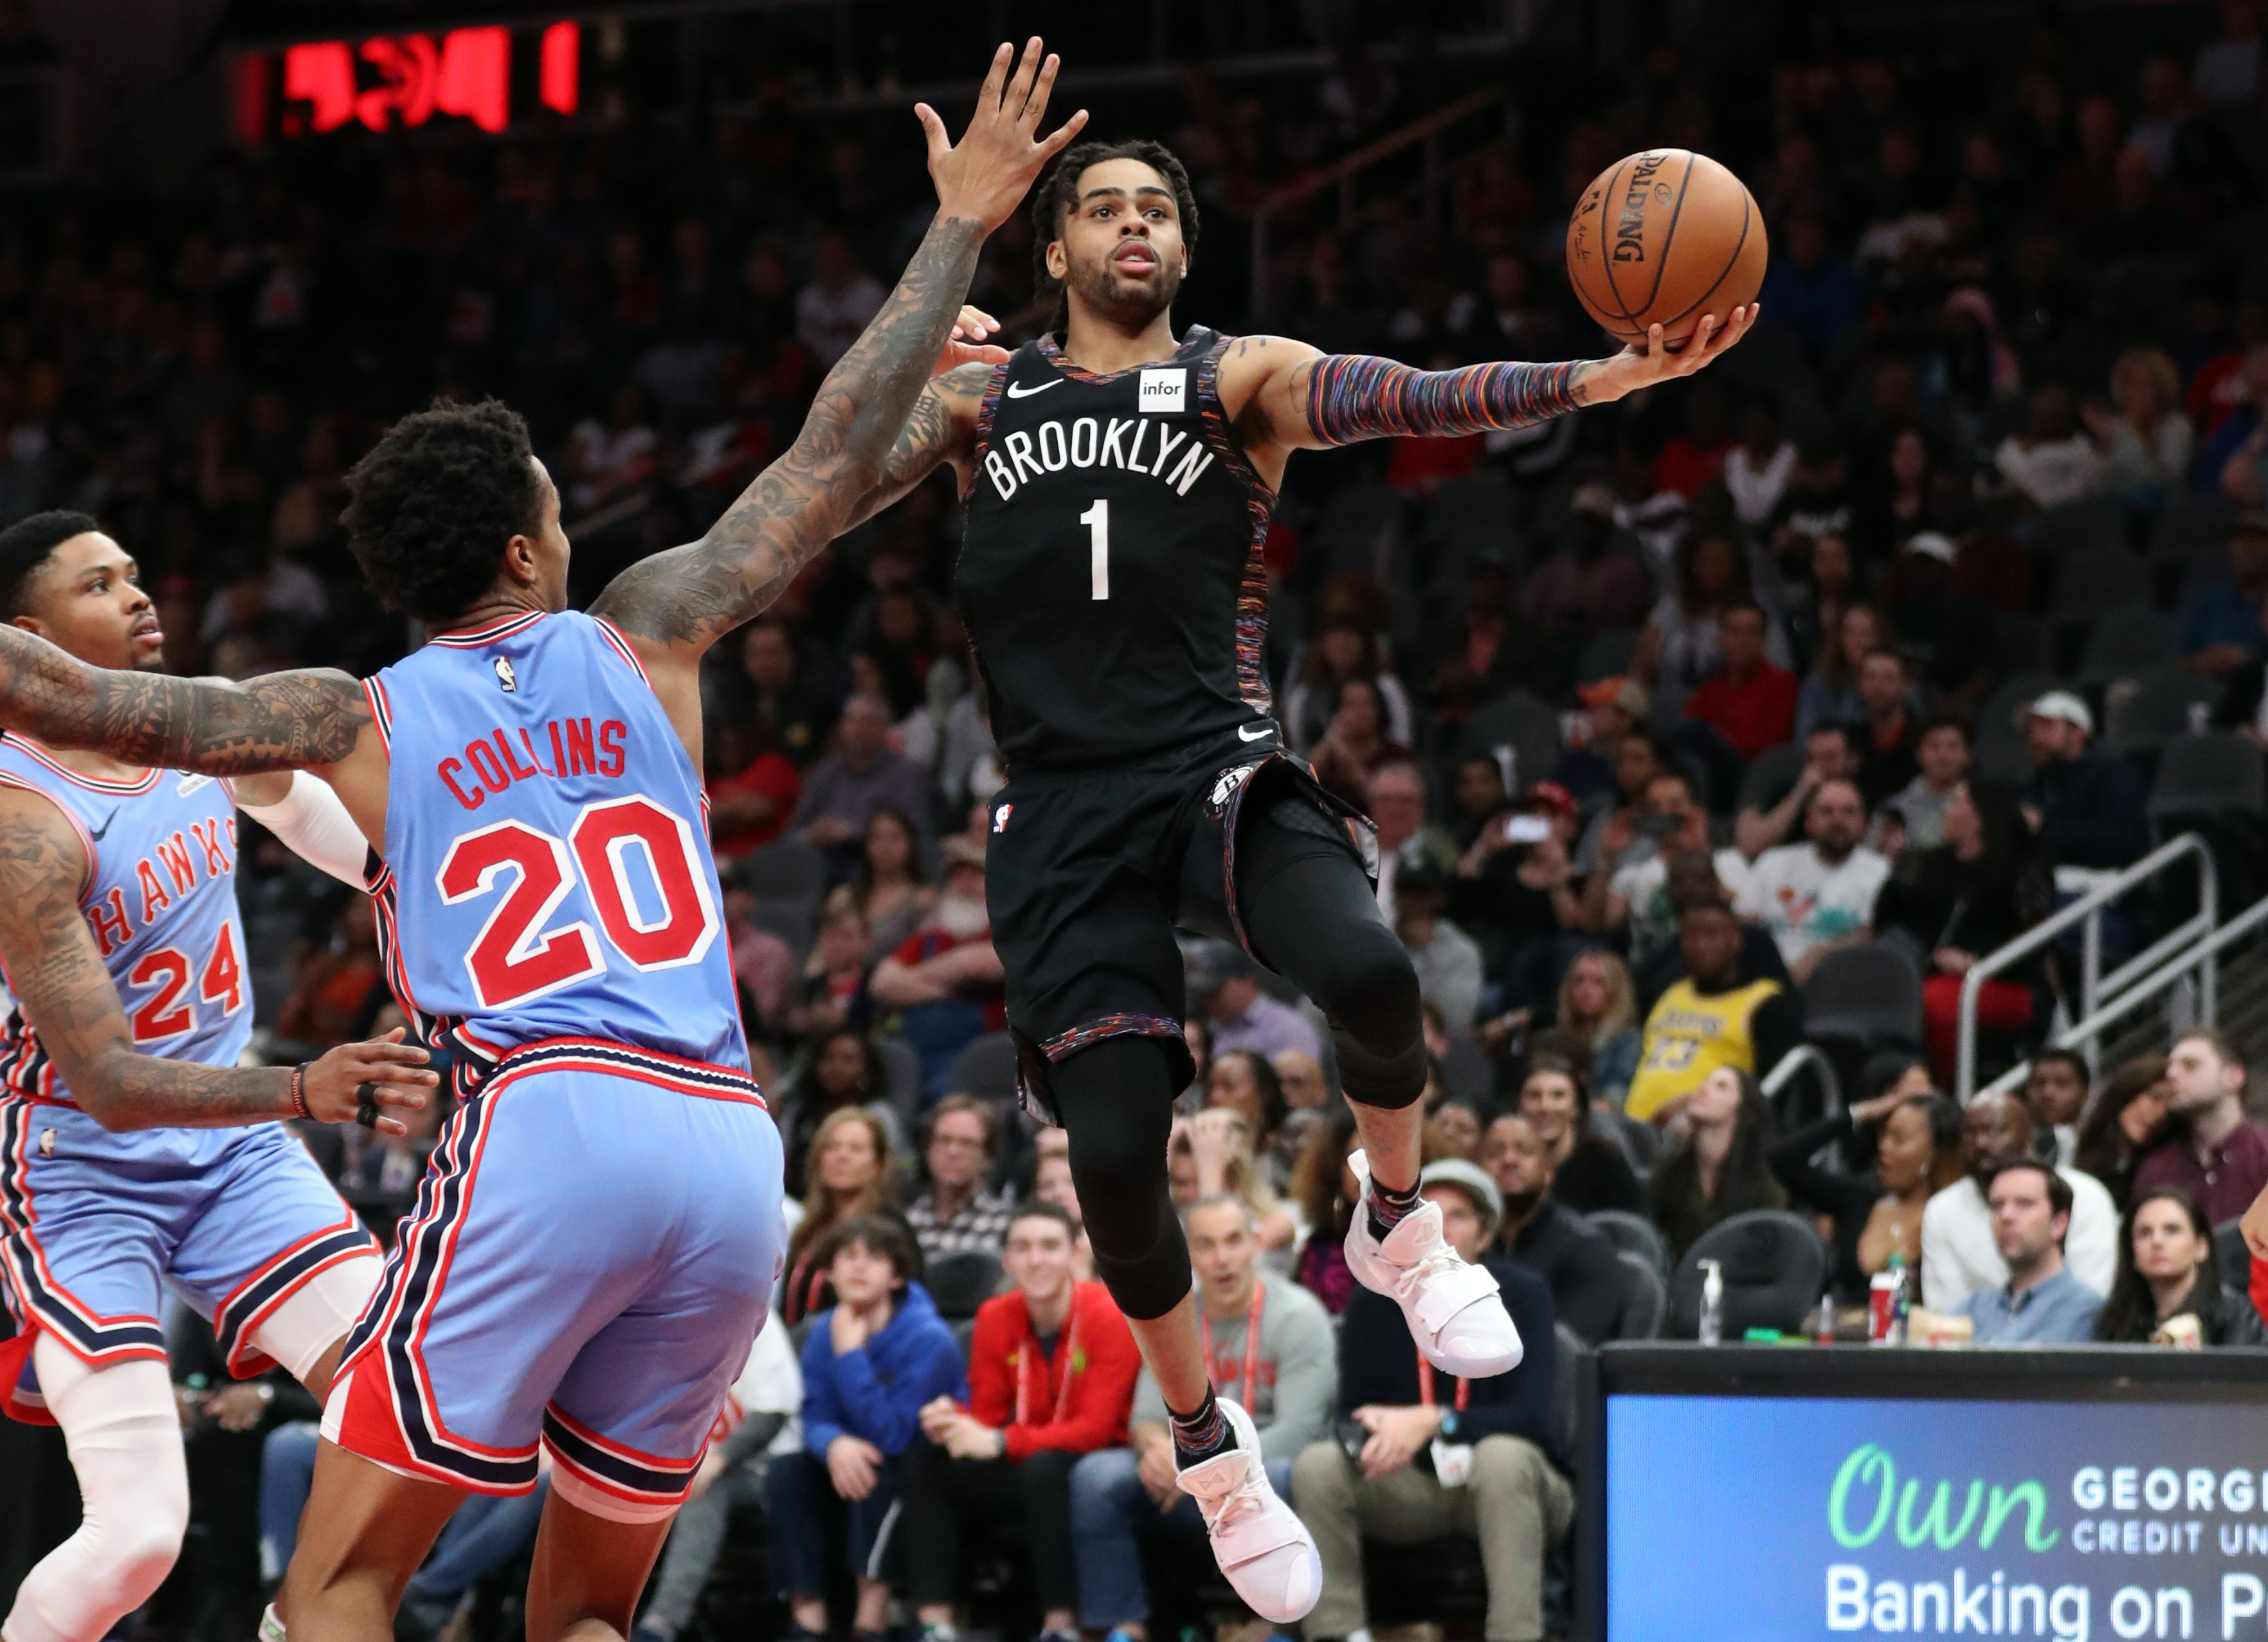 D'Angelo Russell is leading the basketball revolution in Brooklyn